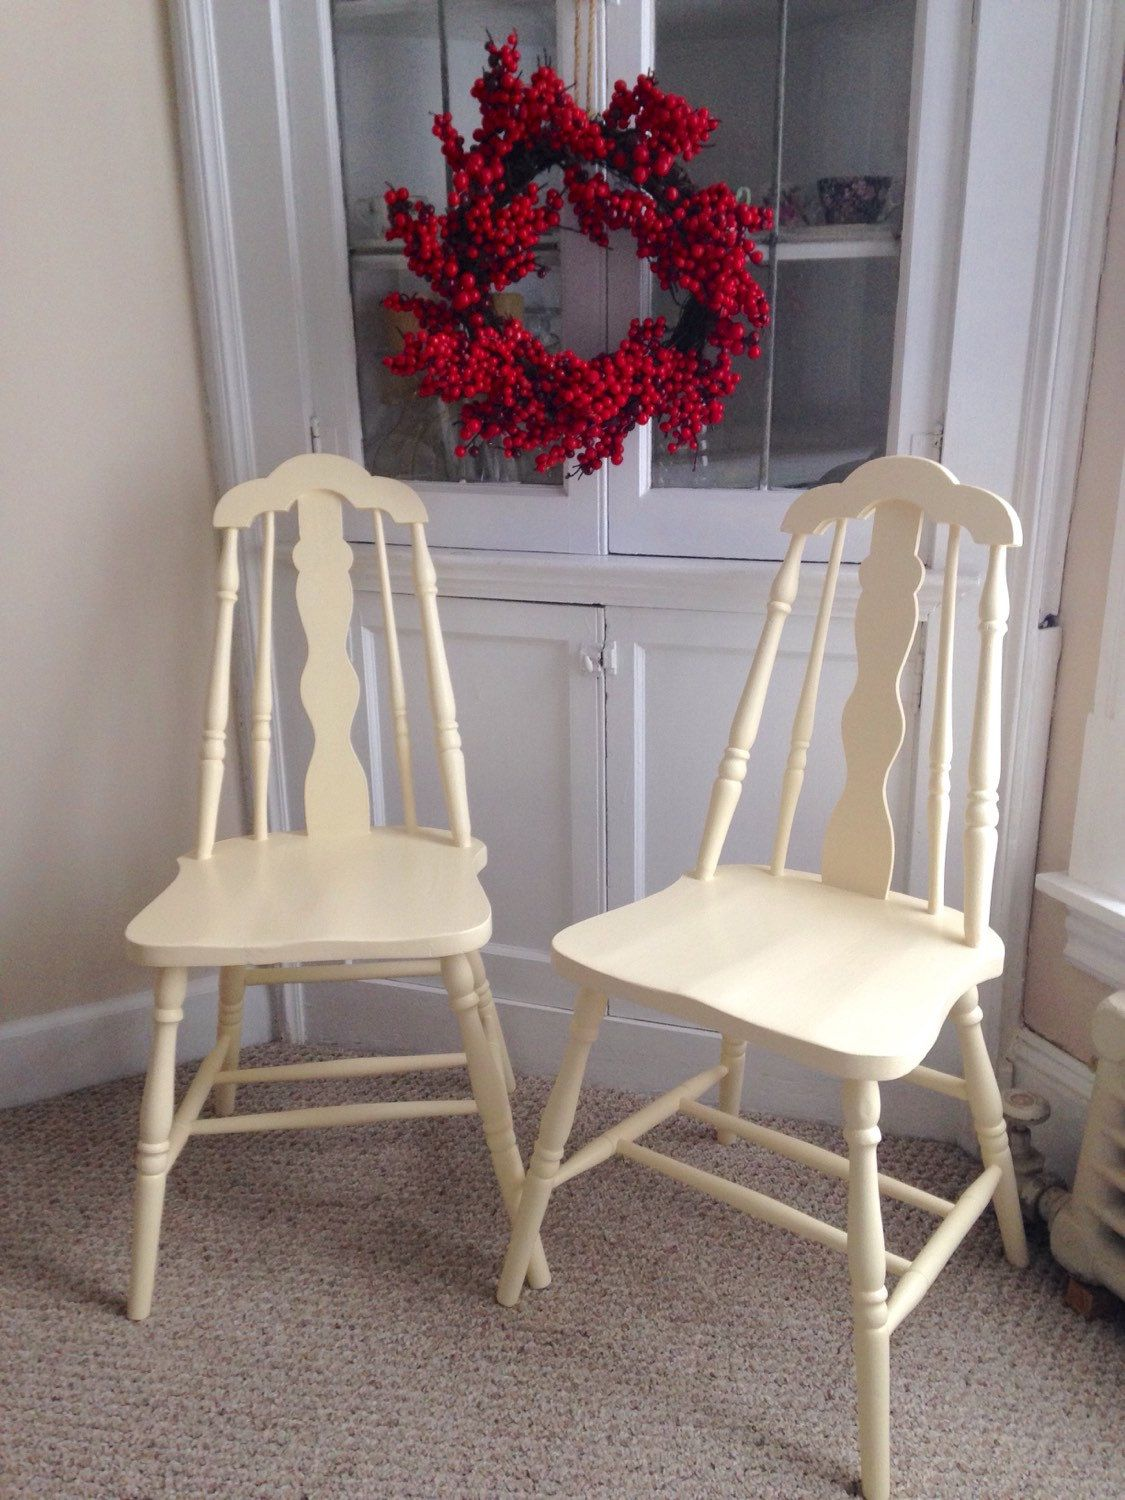 On hold for purchase two vintage kitchen chairs wooden chairs